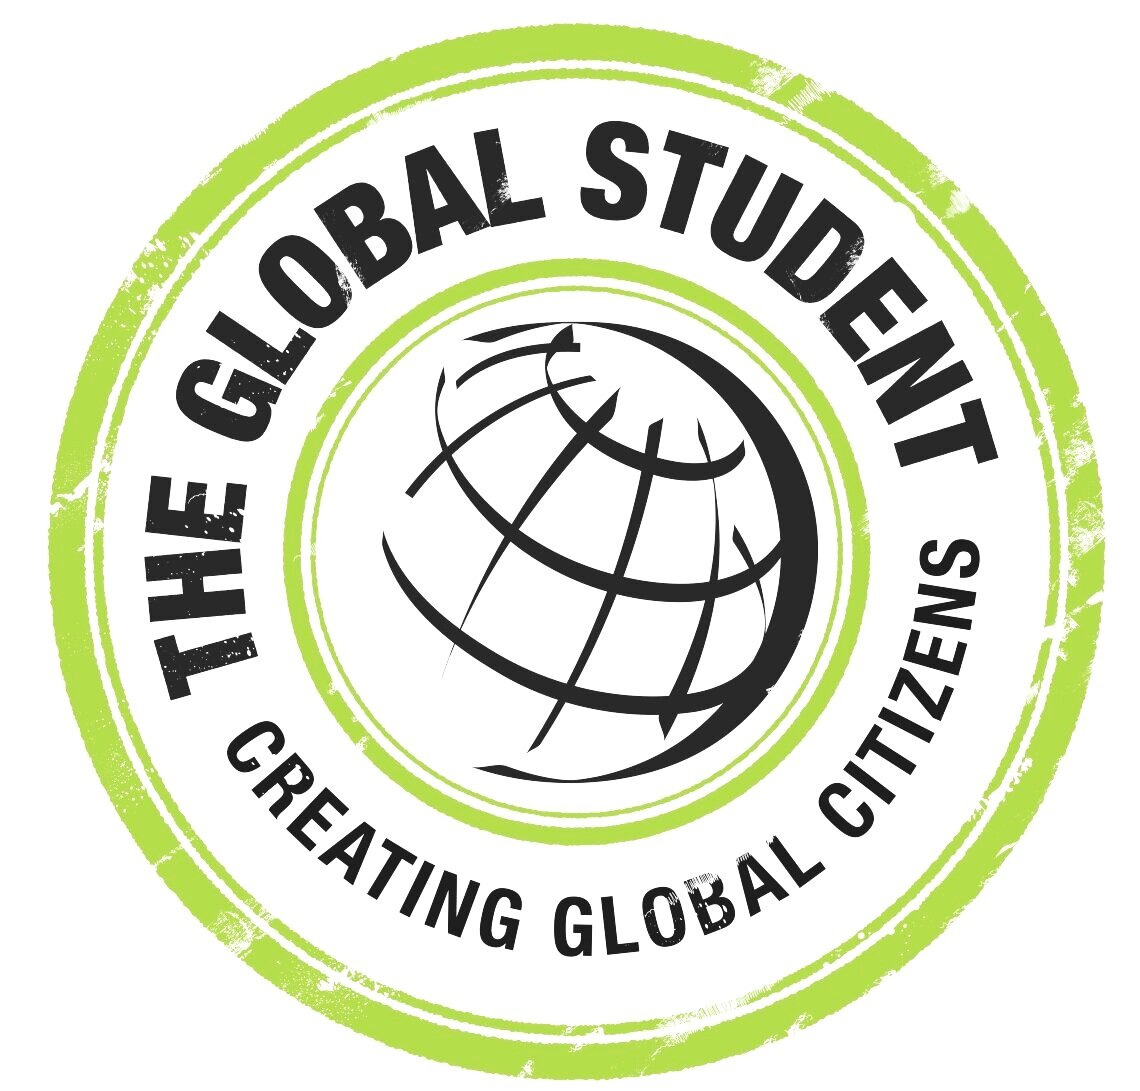 The Global Student